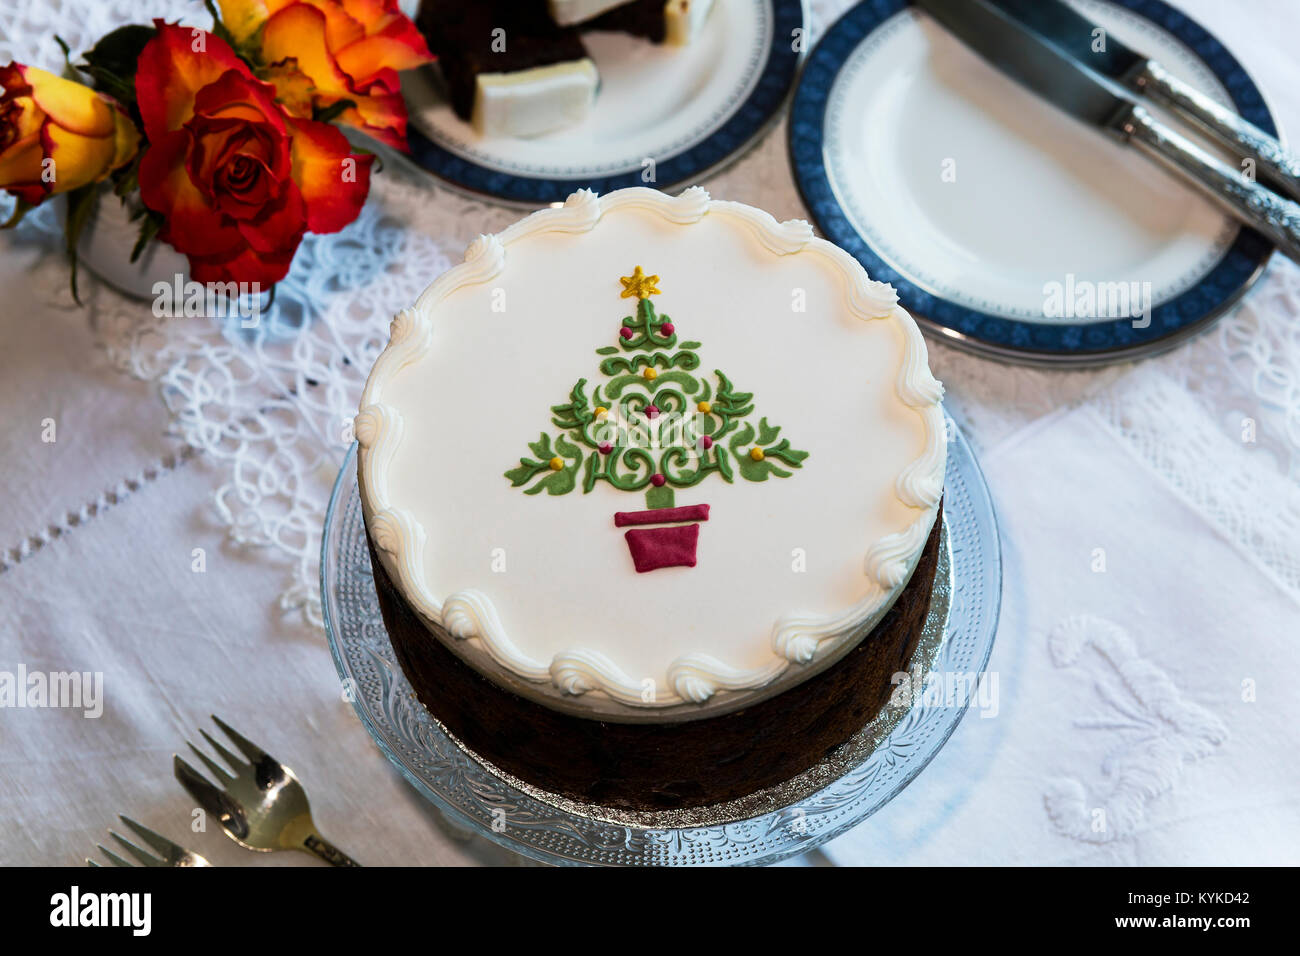 Fruit cake decorated on top with marzipan and royal icing and stencilled  Christmas Tree. - Stock Image